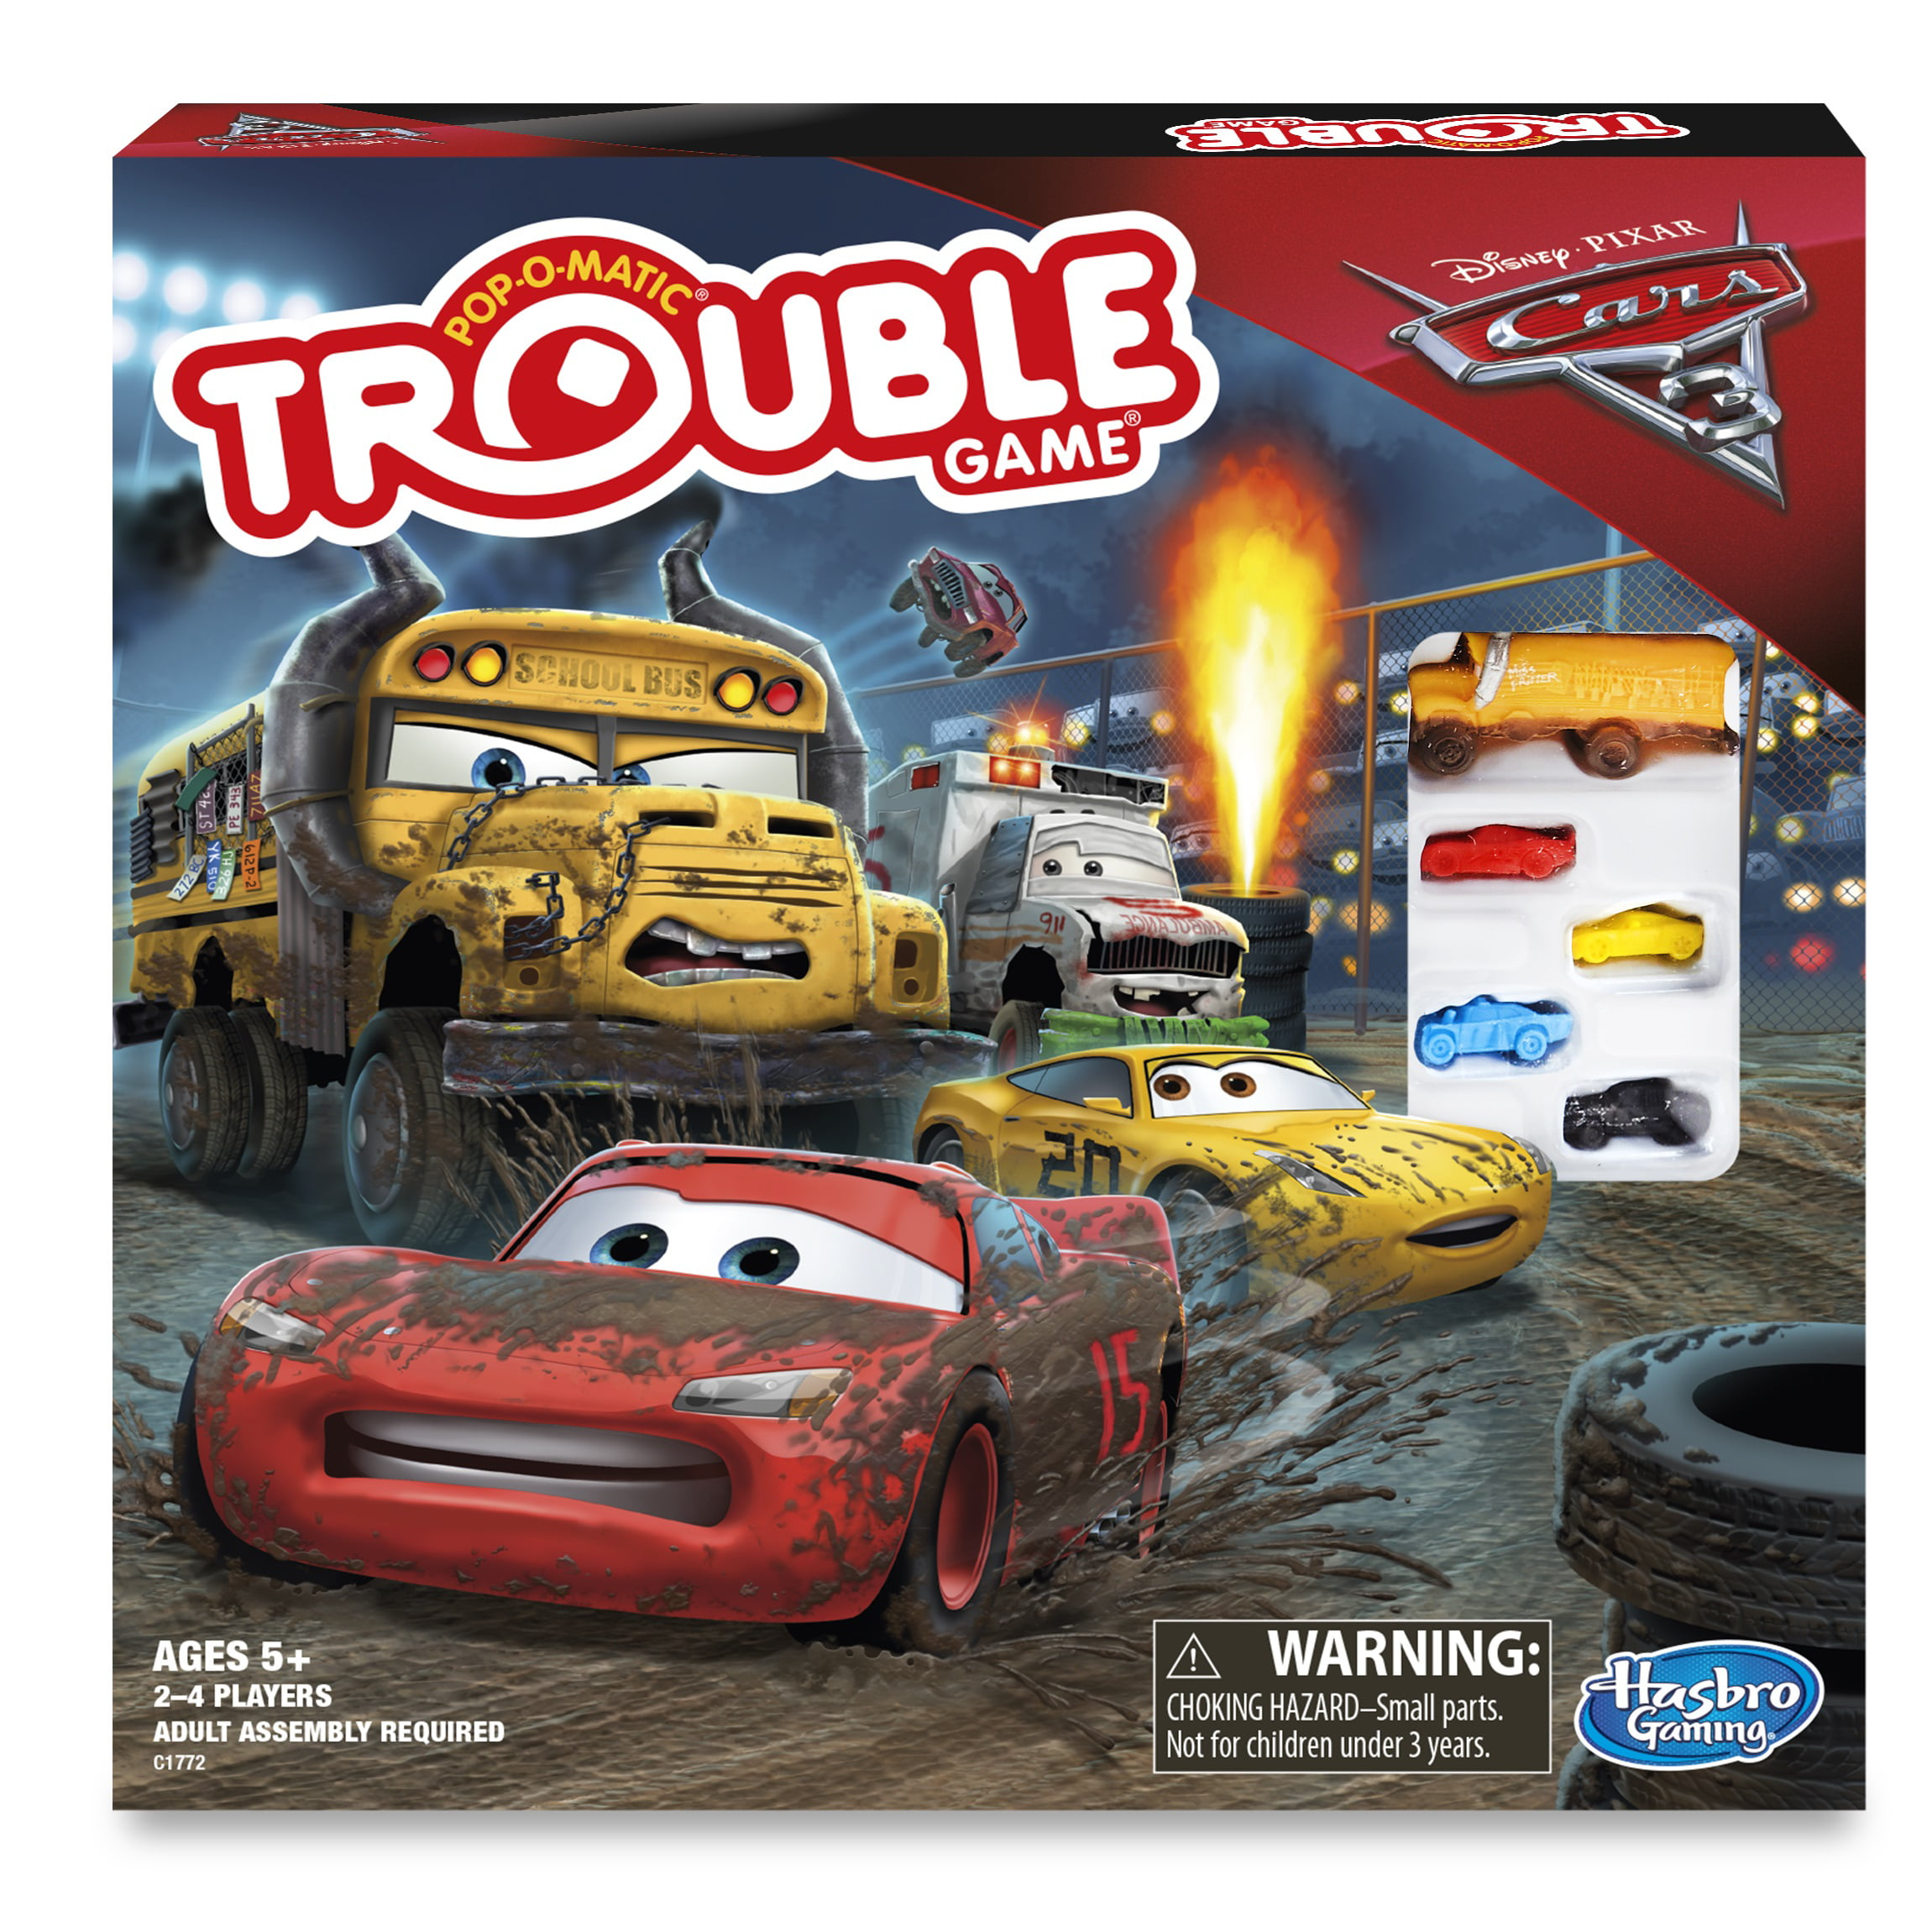 Trouble Game: Disney Pixar Cars 3 Edition by Hasbro Inc